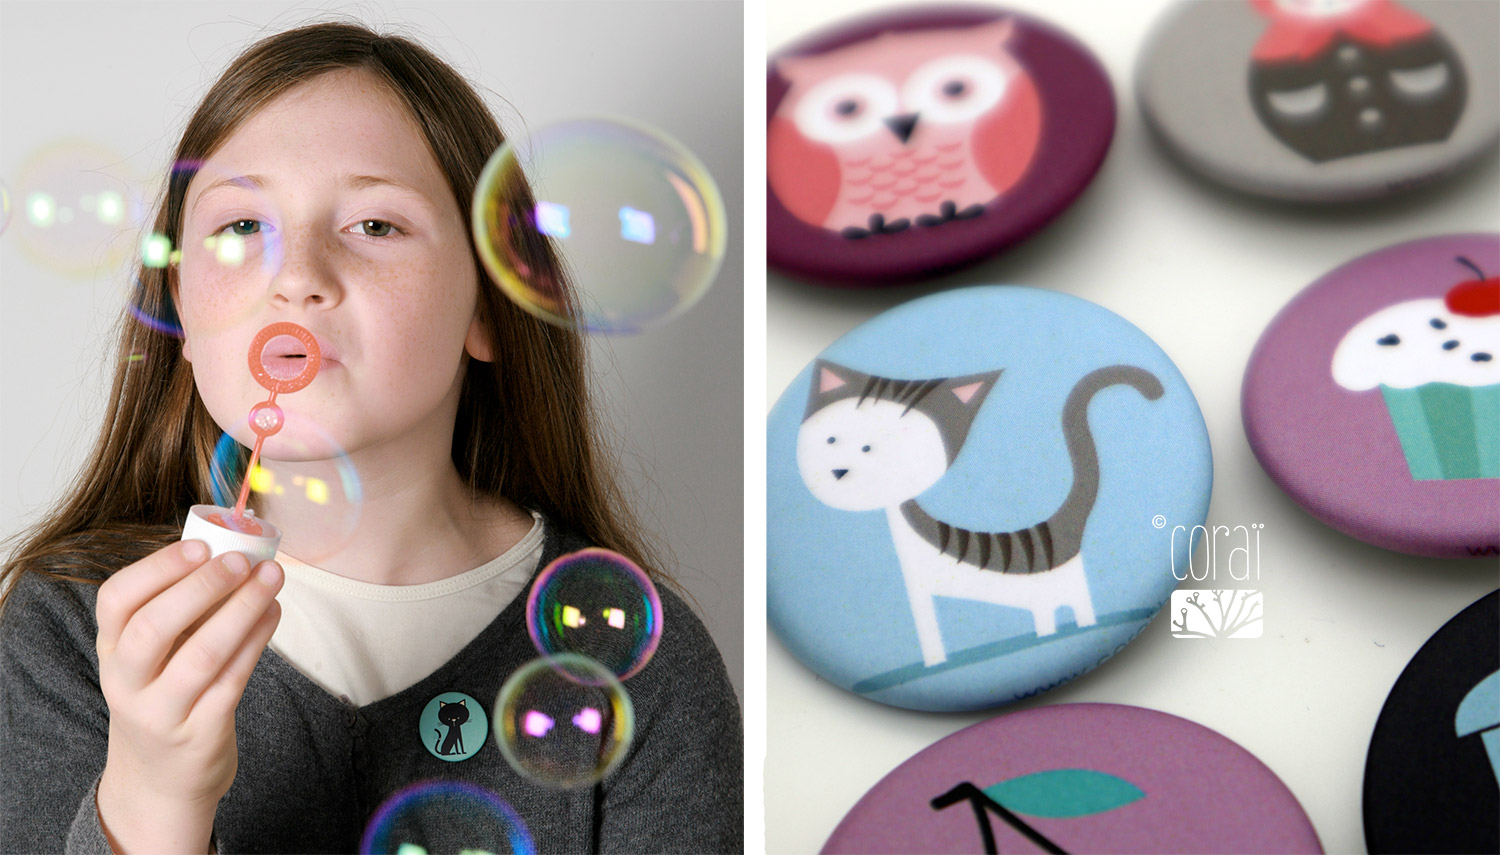 badges enfant 32mm mat graphismes colores creation corai coraline riviere2